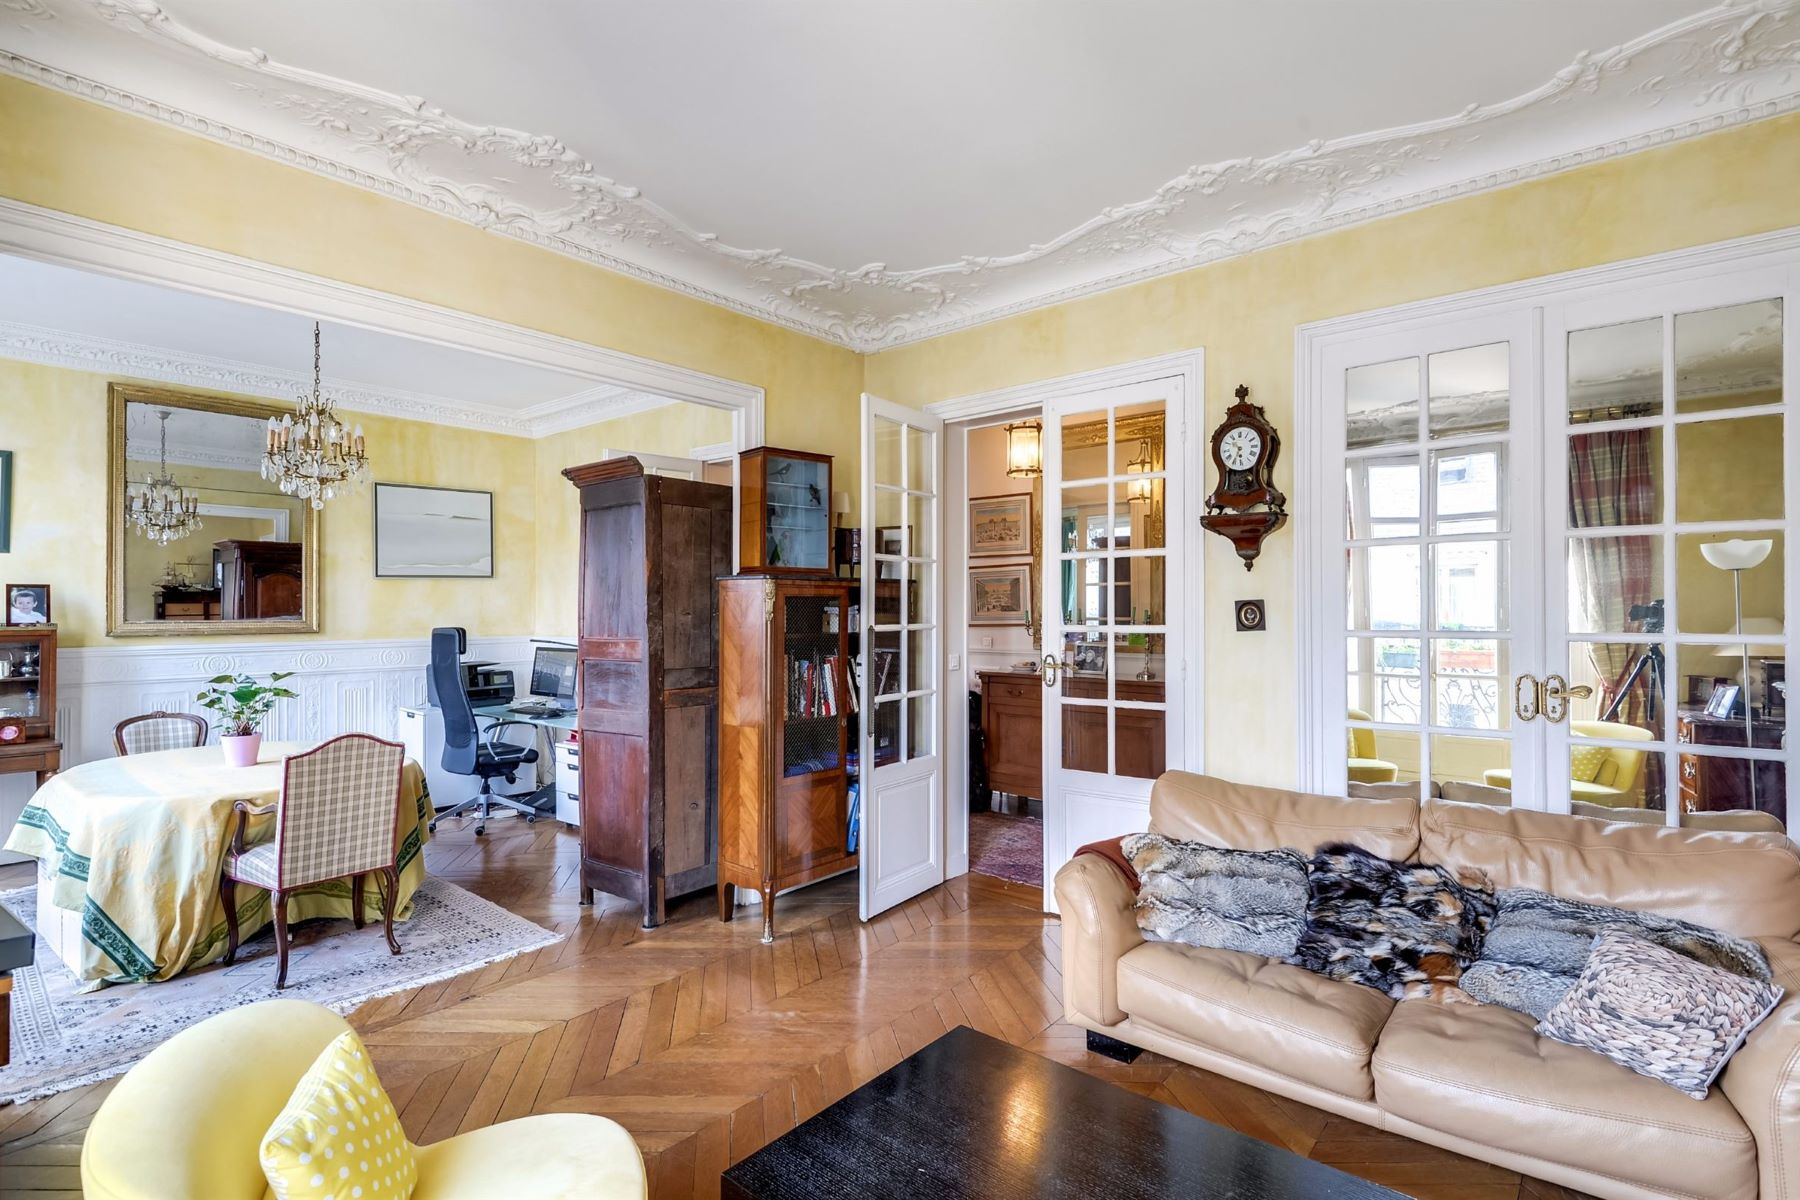 Apartment for Sale at A 5 rooms Apartment for sale, Neuilly - Sablons, 3 bedrooms Neuilly Sur Seine, Ile-De-France, 92200 France